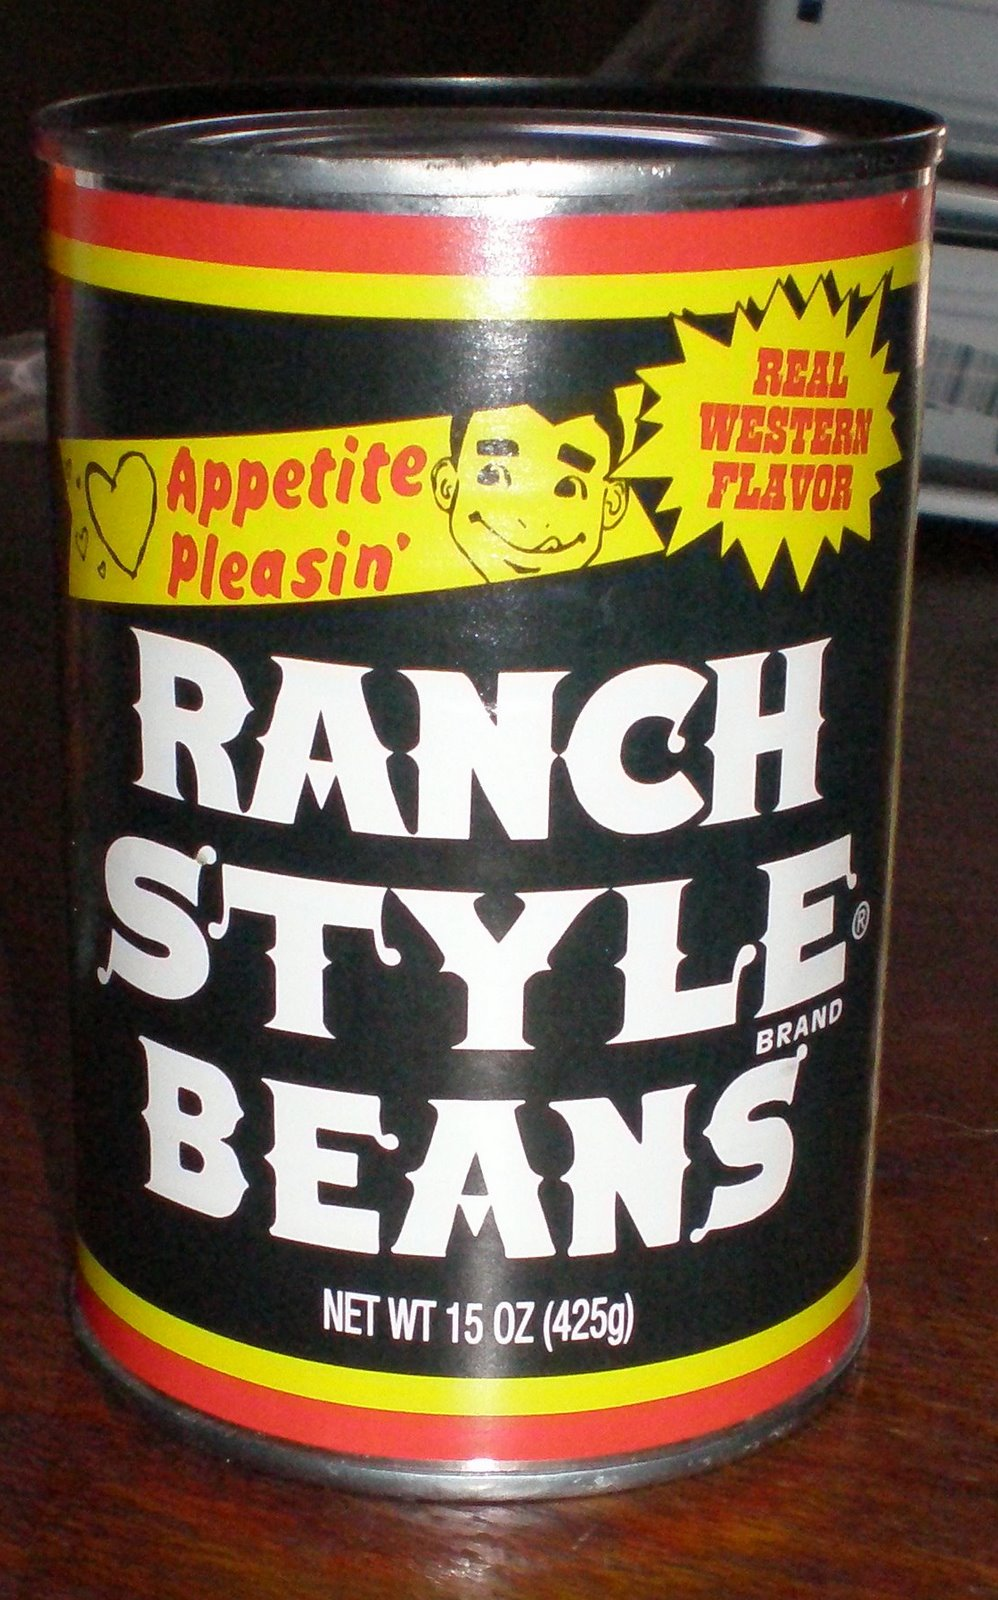 [Image: can_ranch_style_beans_conagra.JPG]